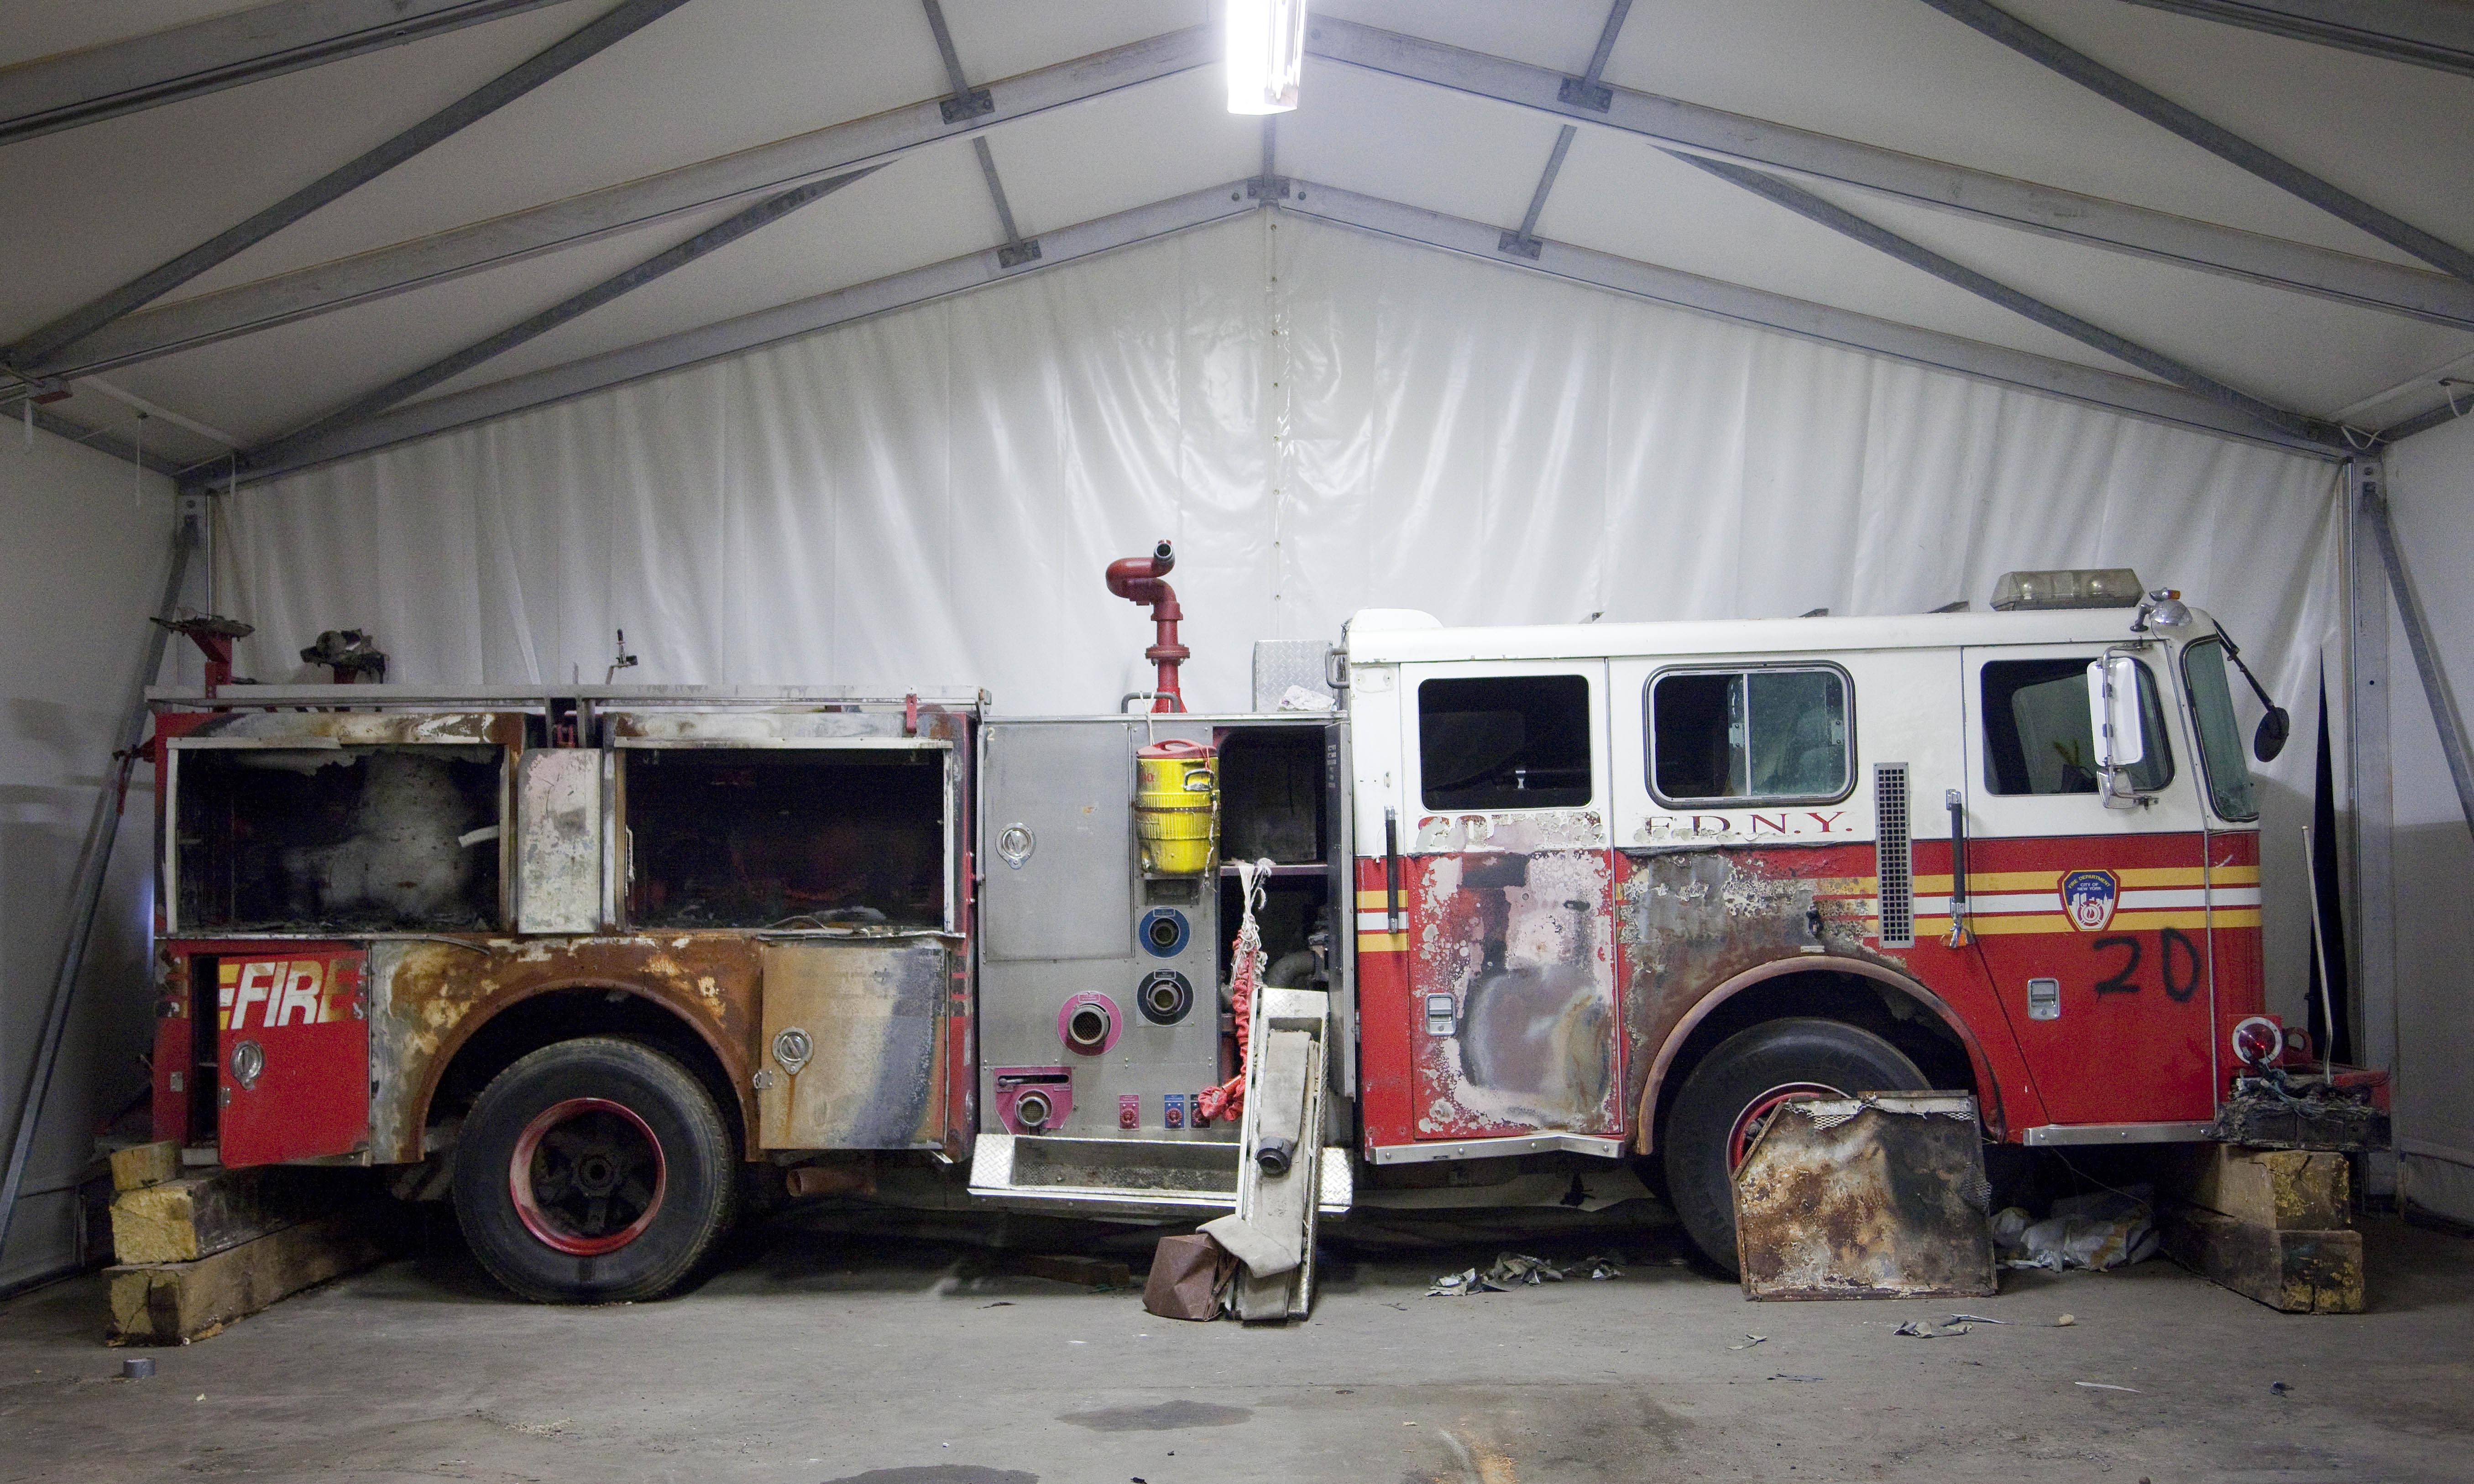 A damaged New York Fire Department truck is part of the collection of artifacts for the National September 11 Museum. The long-awaited museum dedicated to the victims of the Sept. 11 terror attacks will open to the public at the World Trade Center site on May 21, officials announced Monday, March 24.